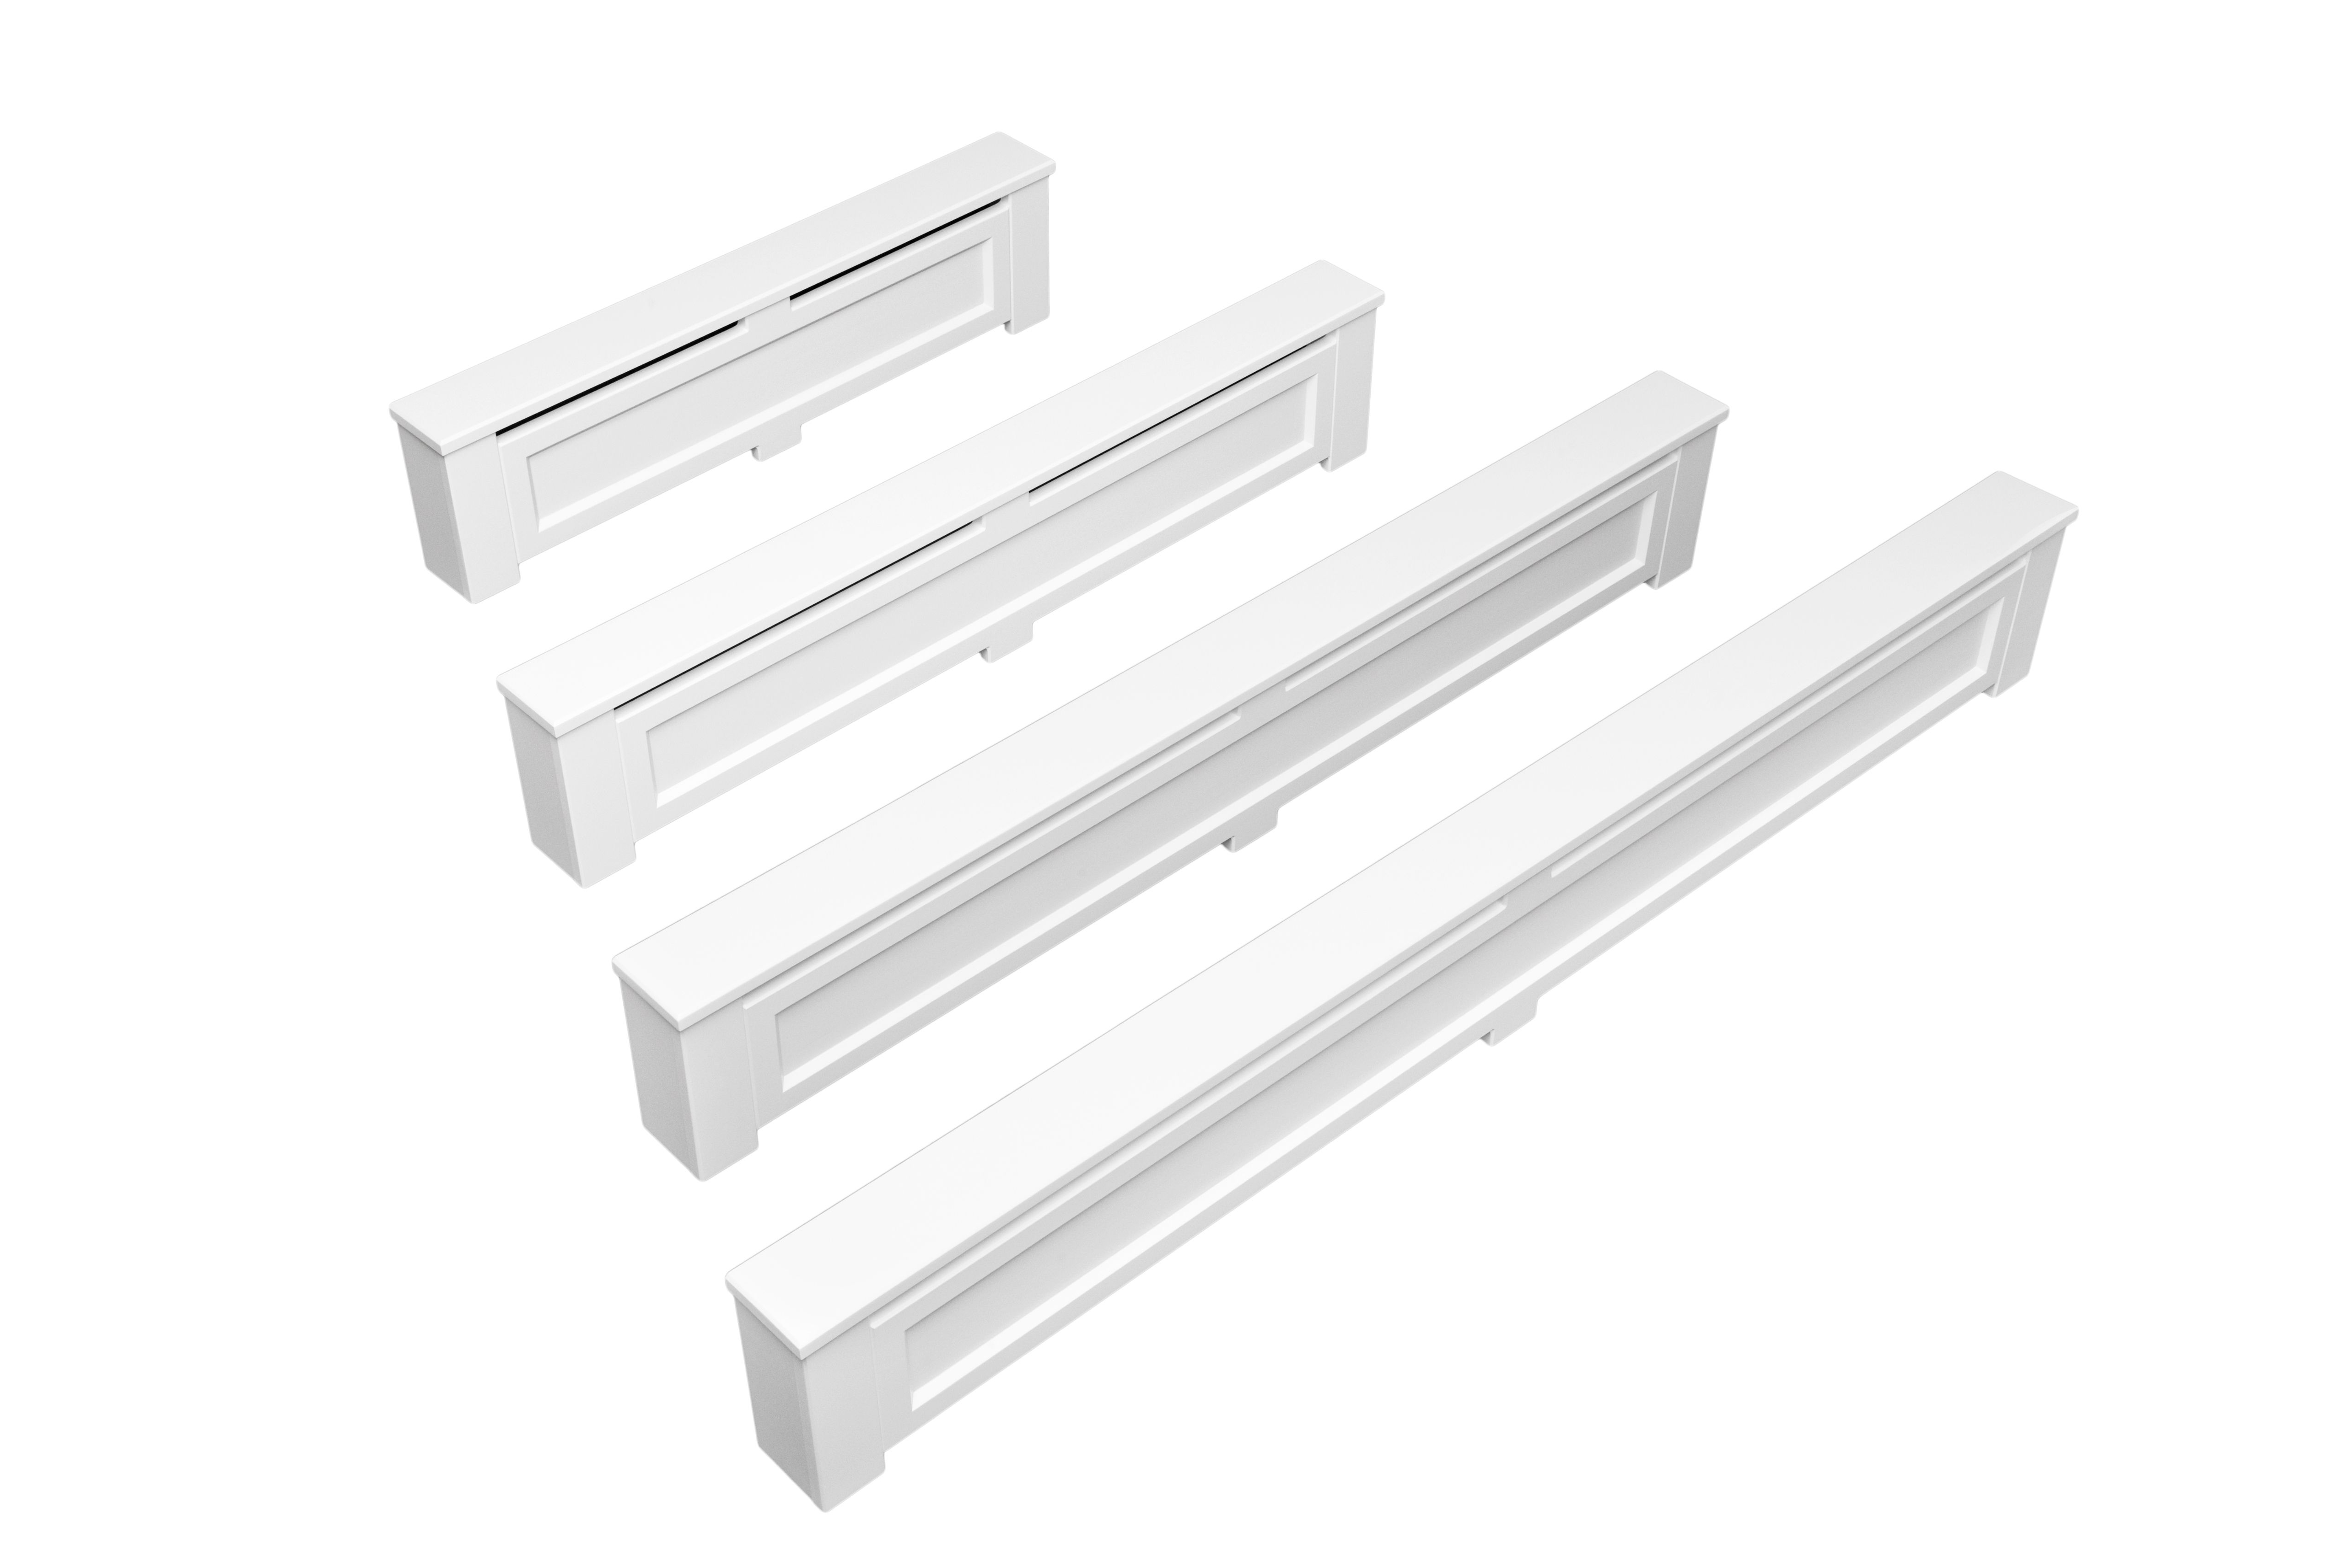 Wood Baseboard Replacement Covers Easily Slip Over Your